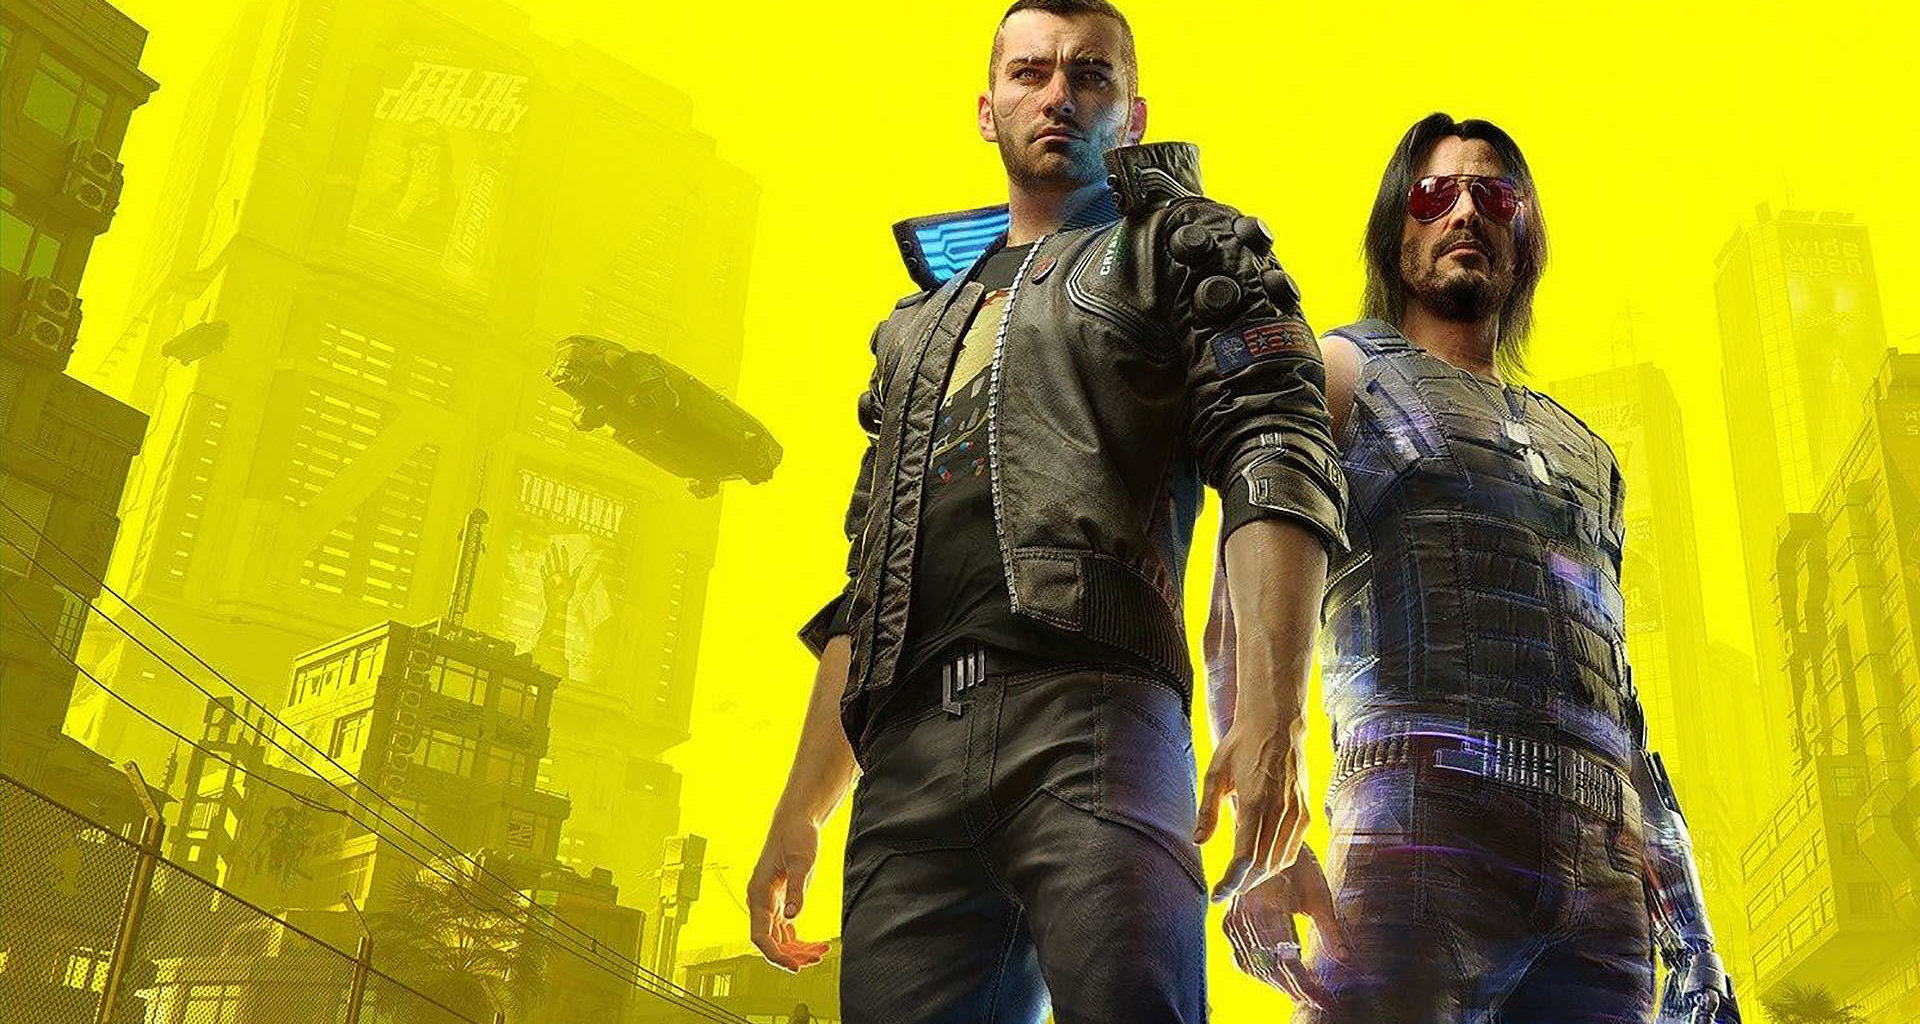 Cyberpunk 2077 developers announced new release date on 10th December